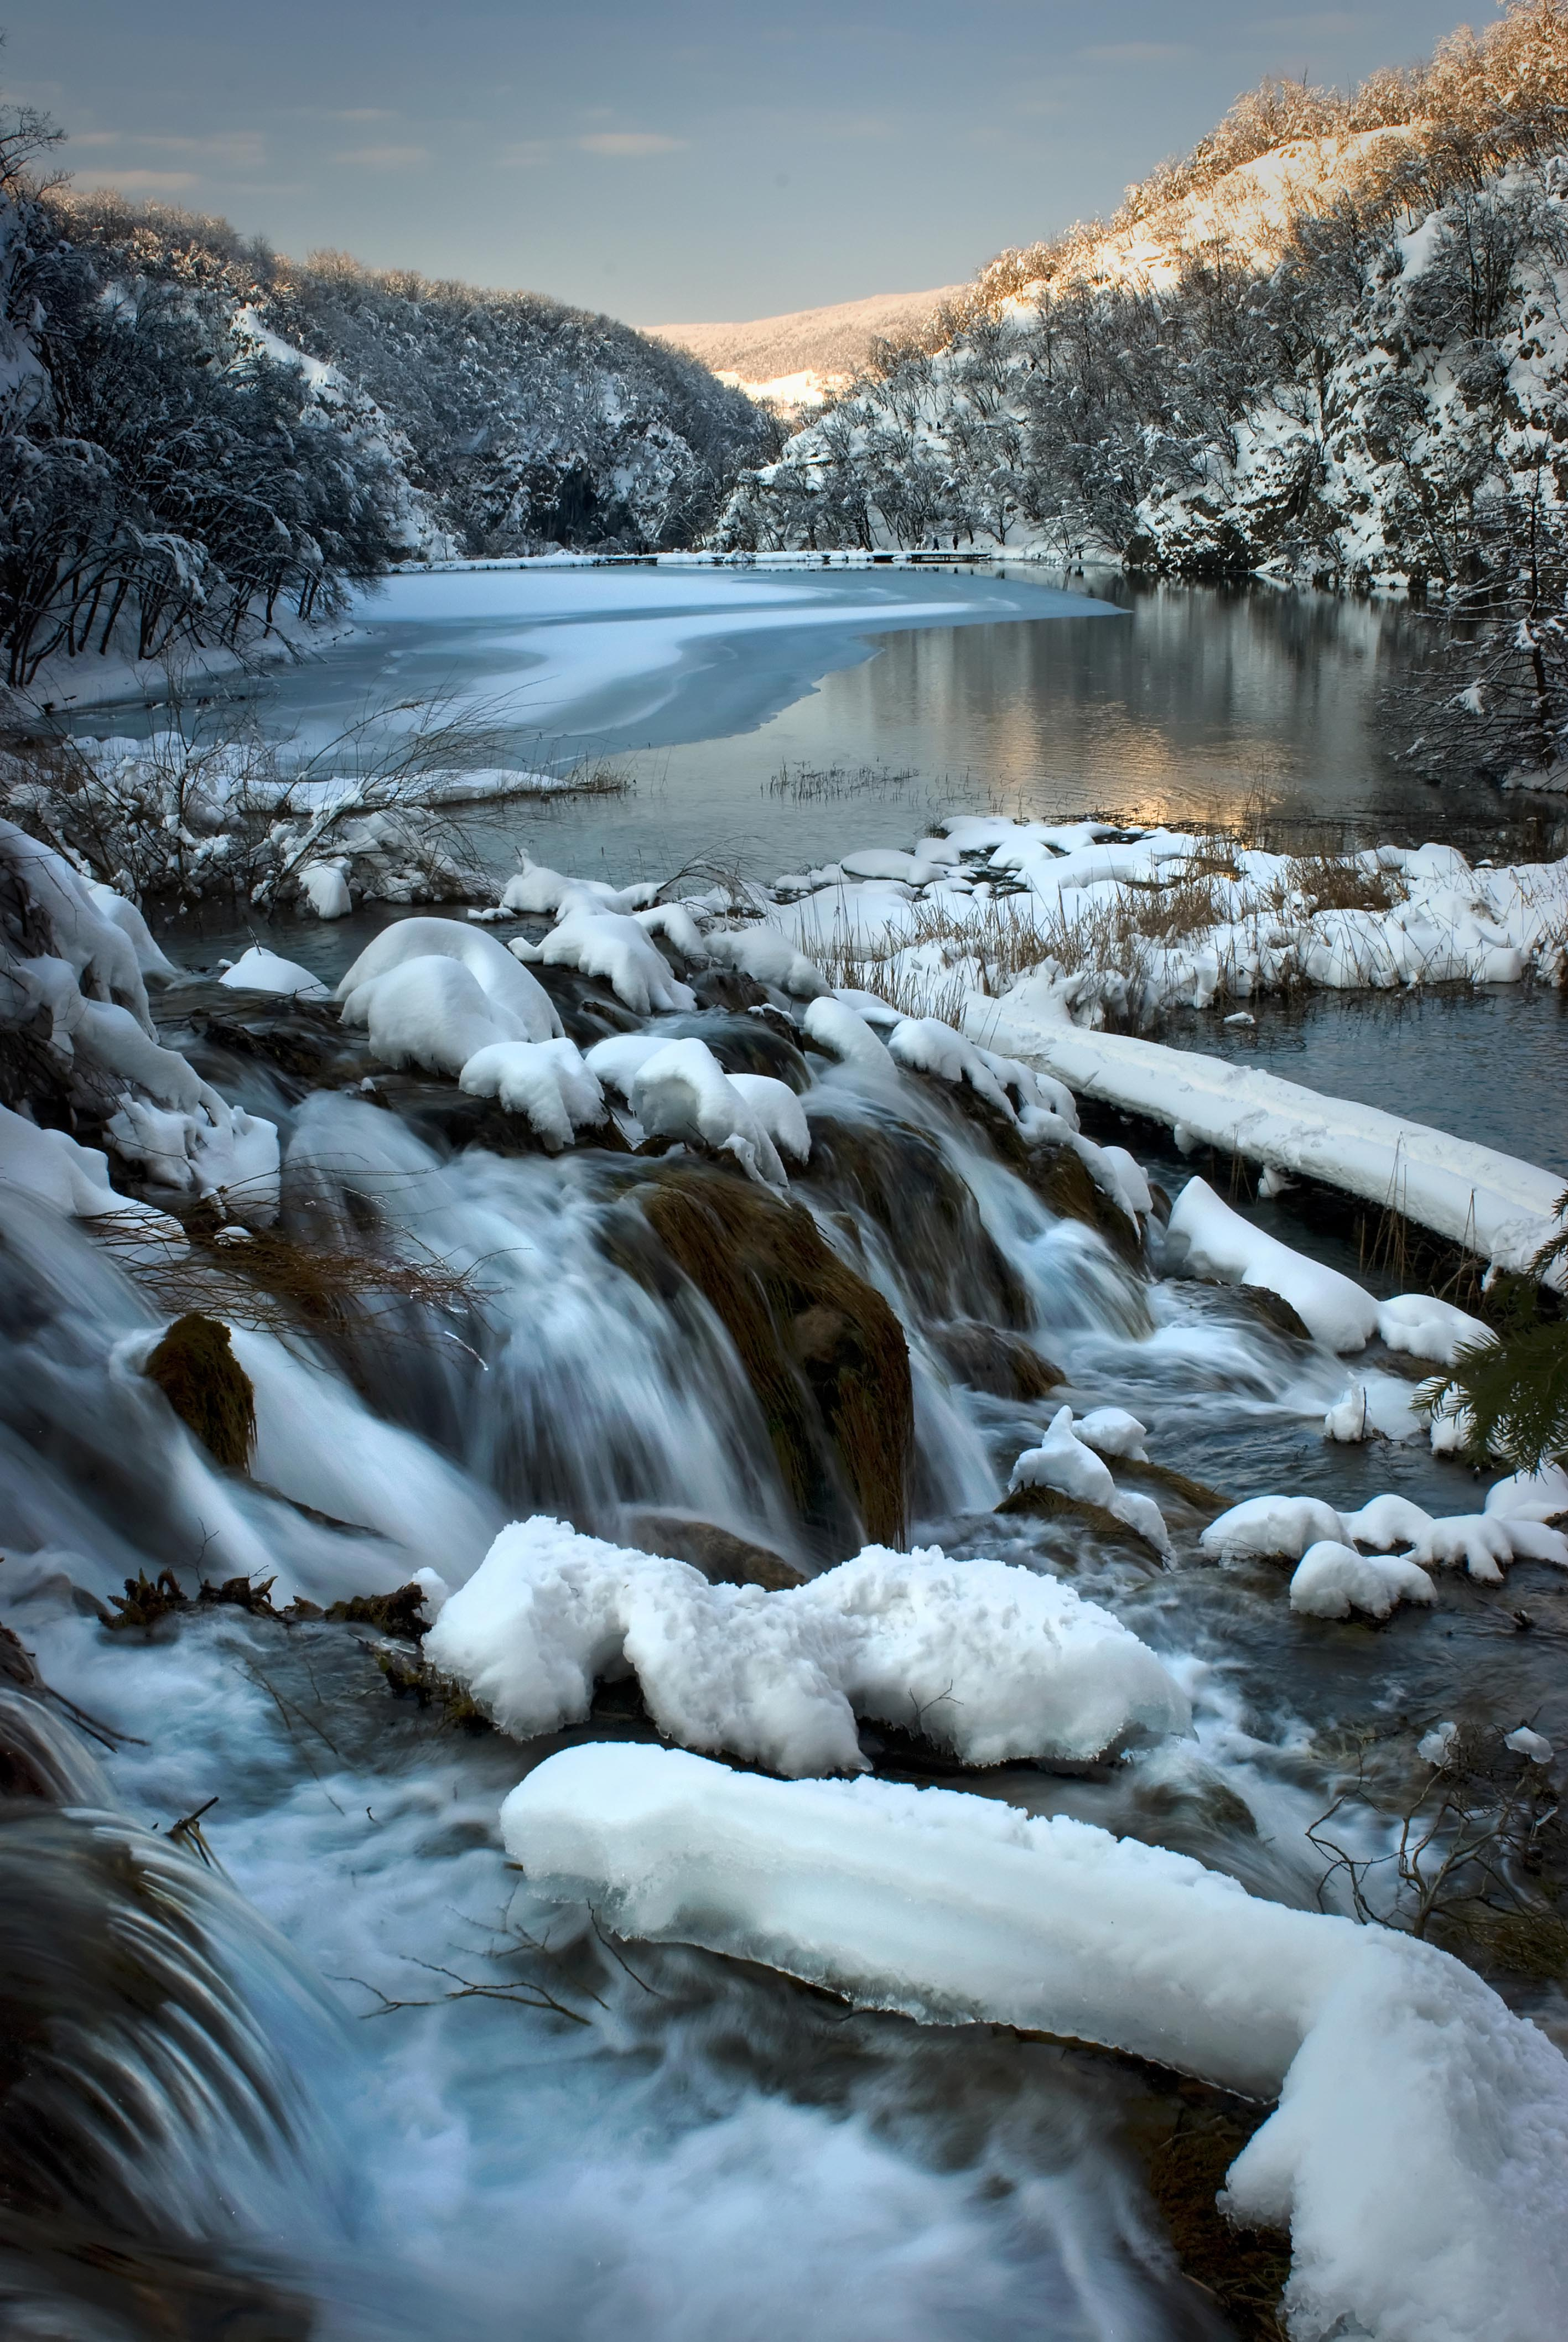 The Plitvice Lakes in winter, frozen waterfalls and the park surrounded by snow.